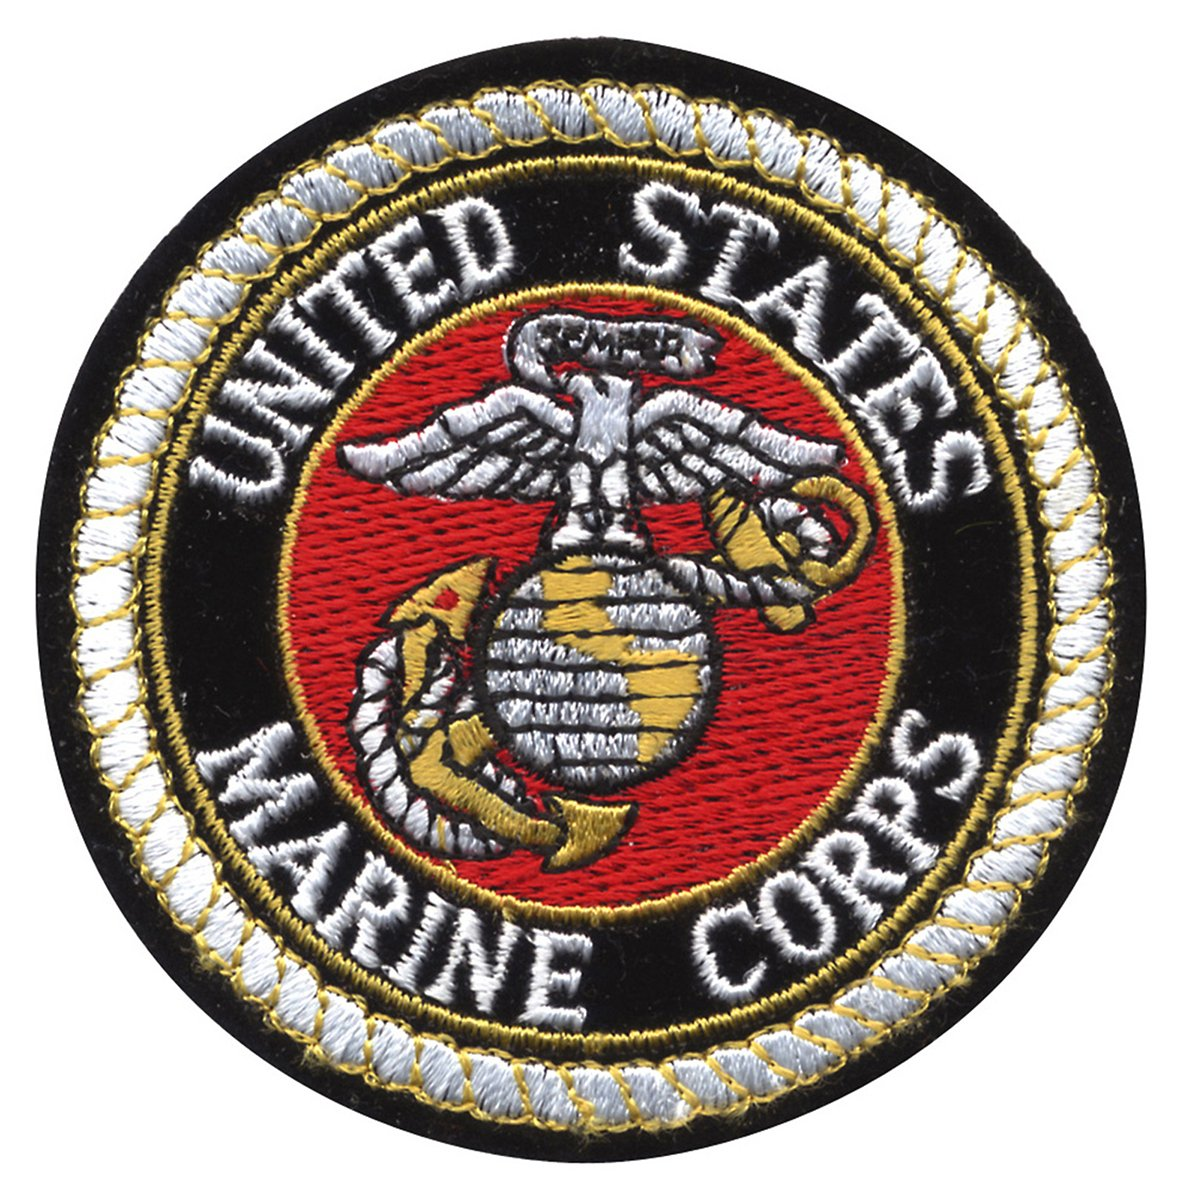 Rothco Deluxe USMC Round Patch, 3'' 3'' Pro-Motion Distributing - Direct 1649